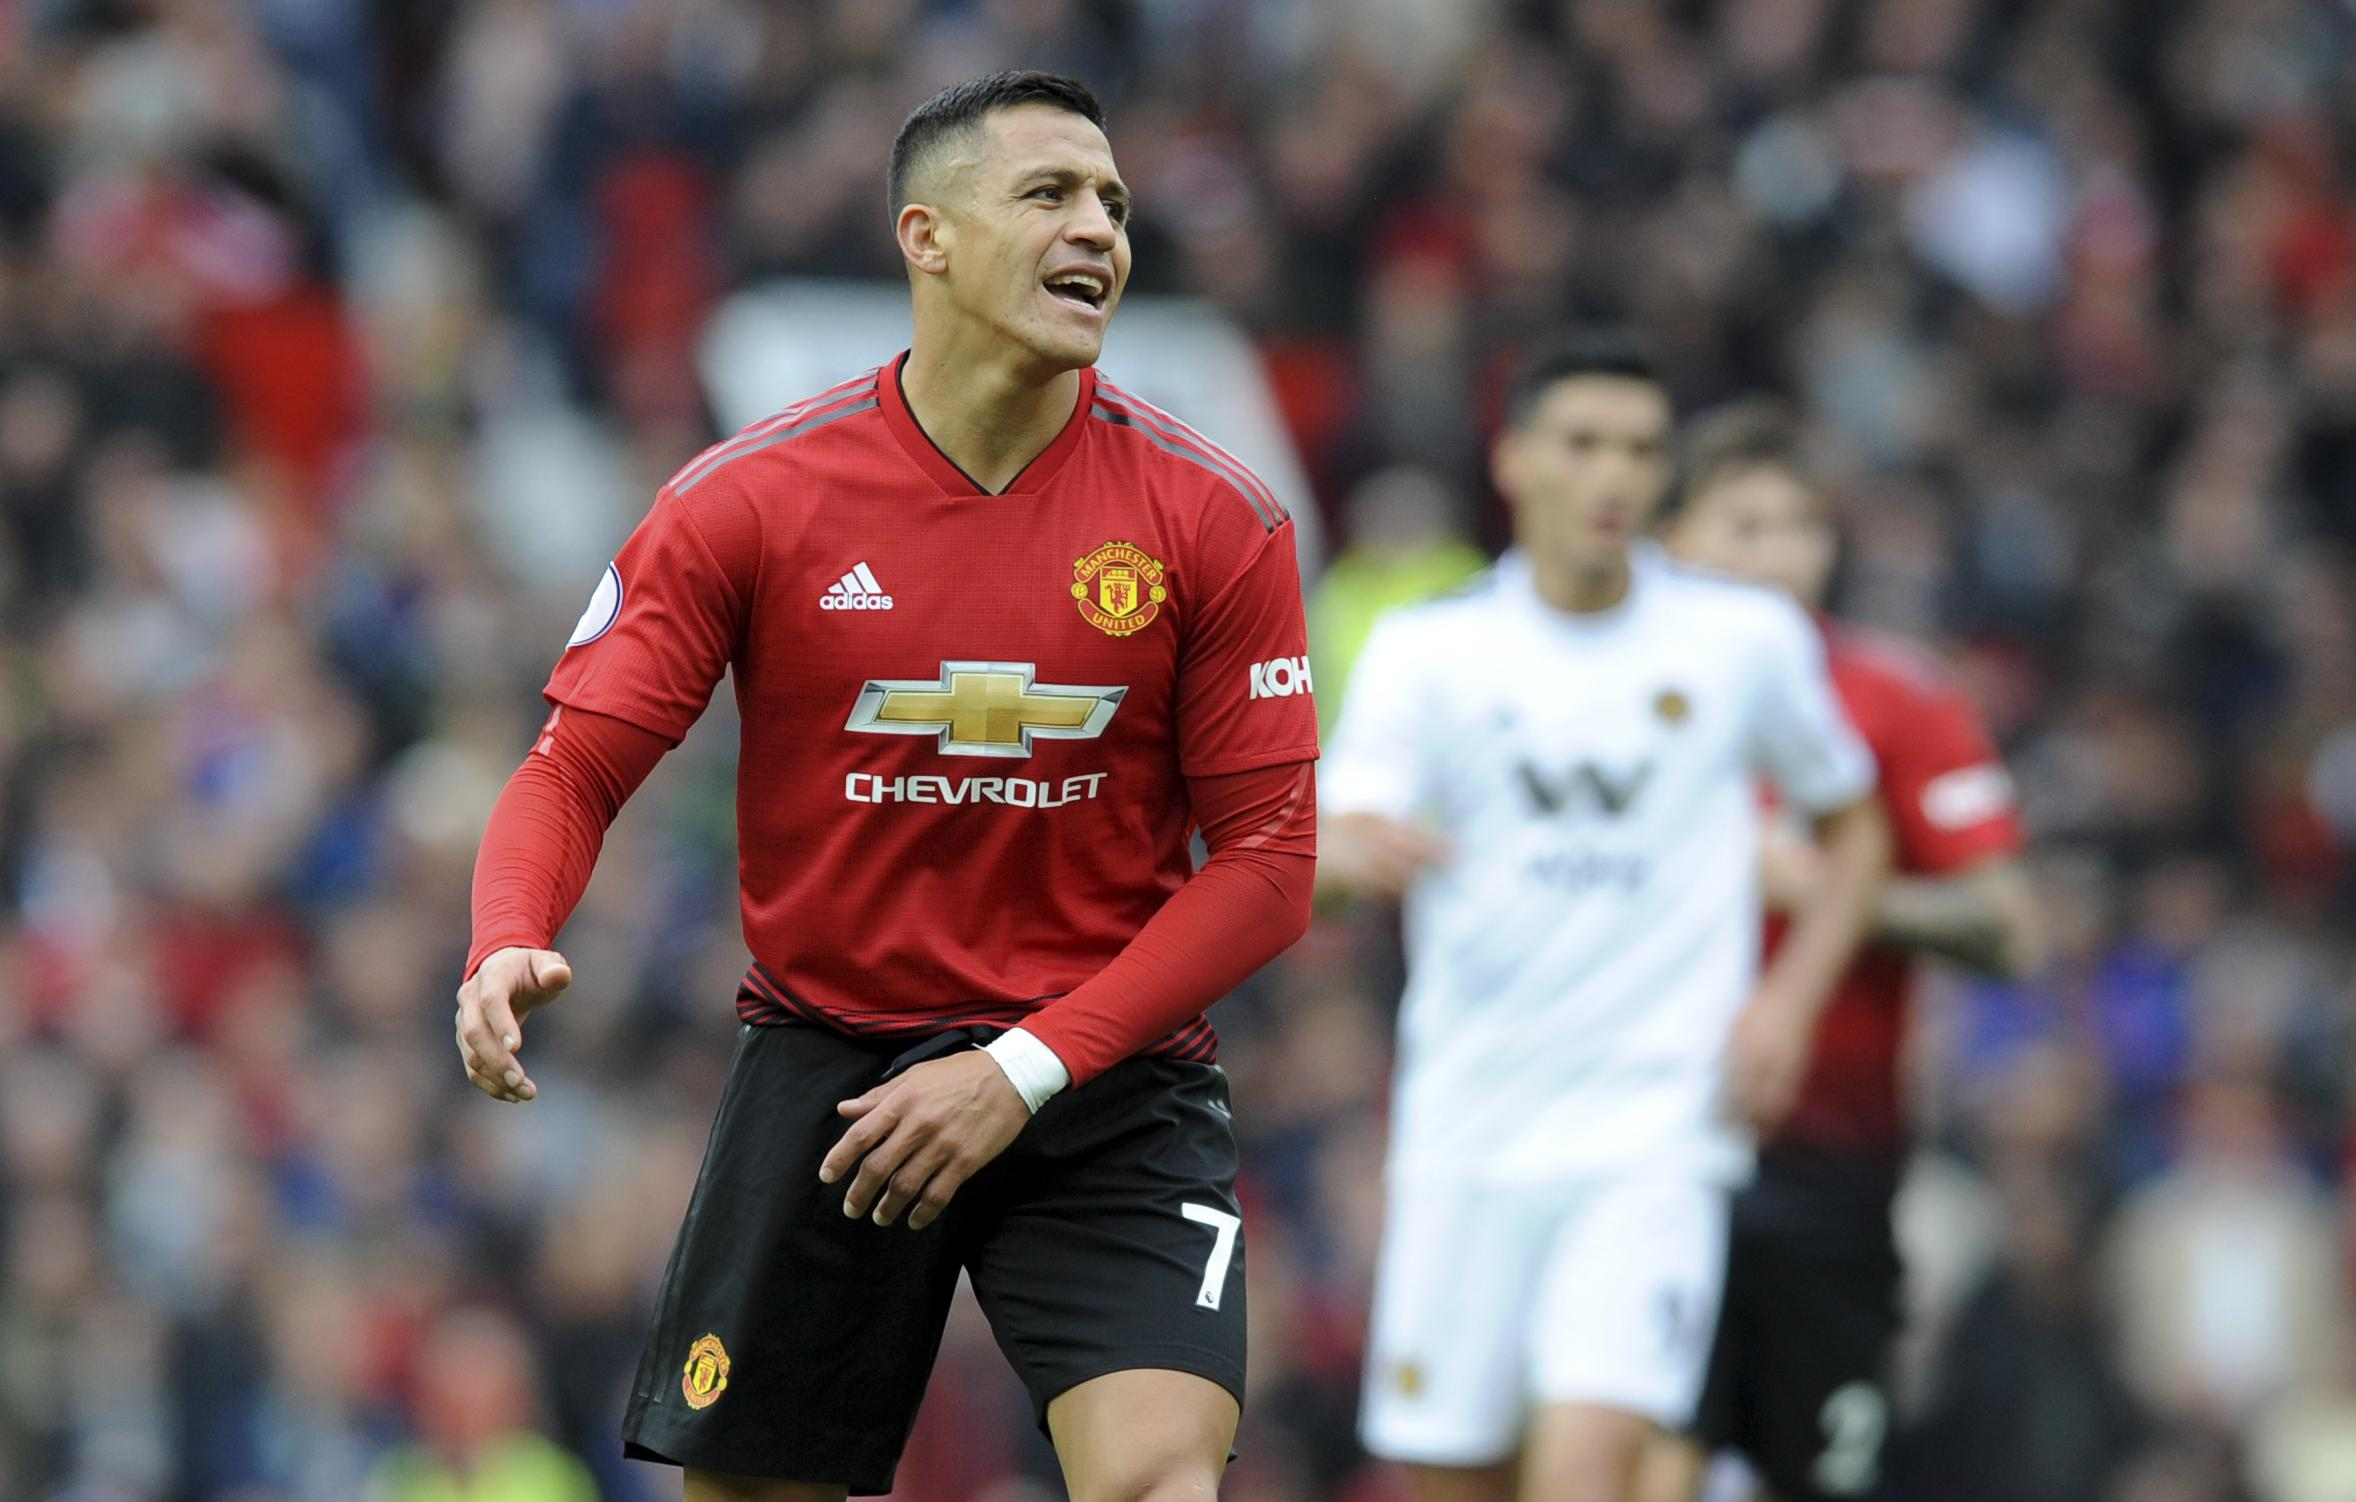 The January arrival of Alexis Sanchez has failed to spark a more potent attacking threat